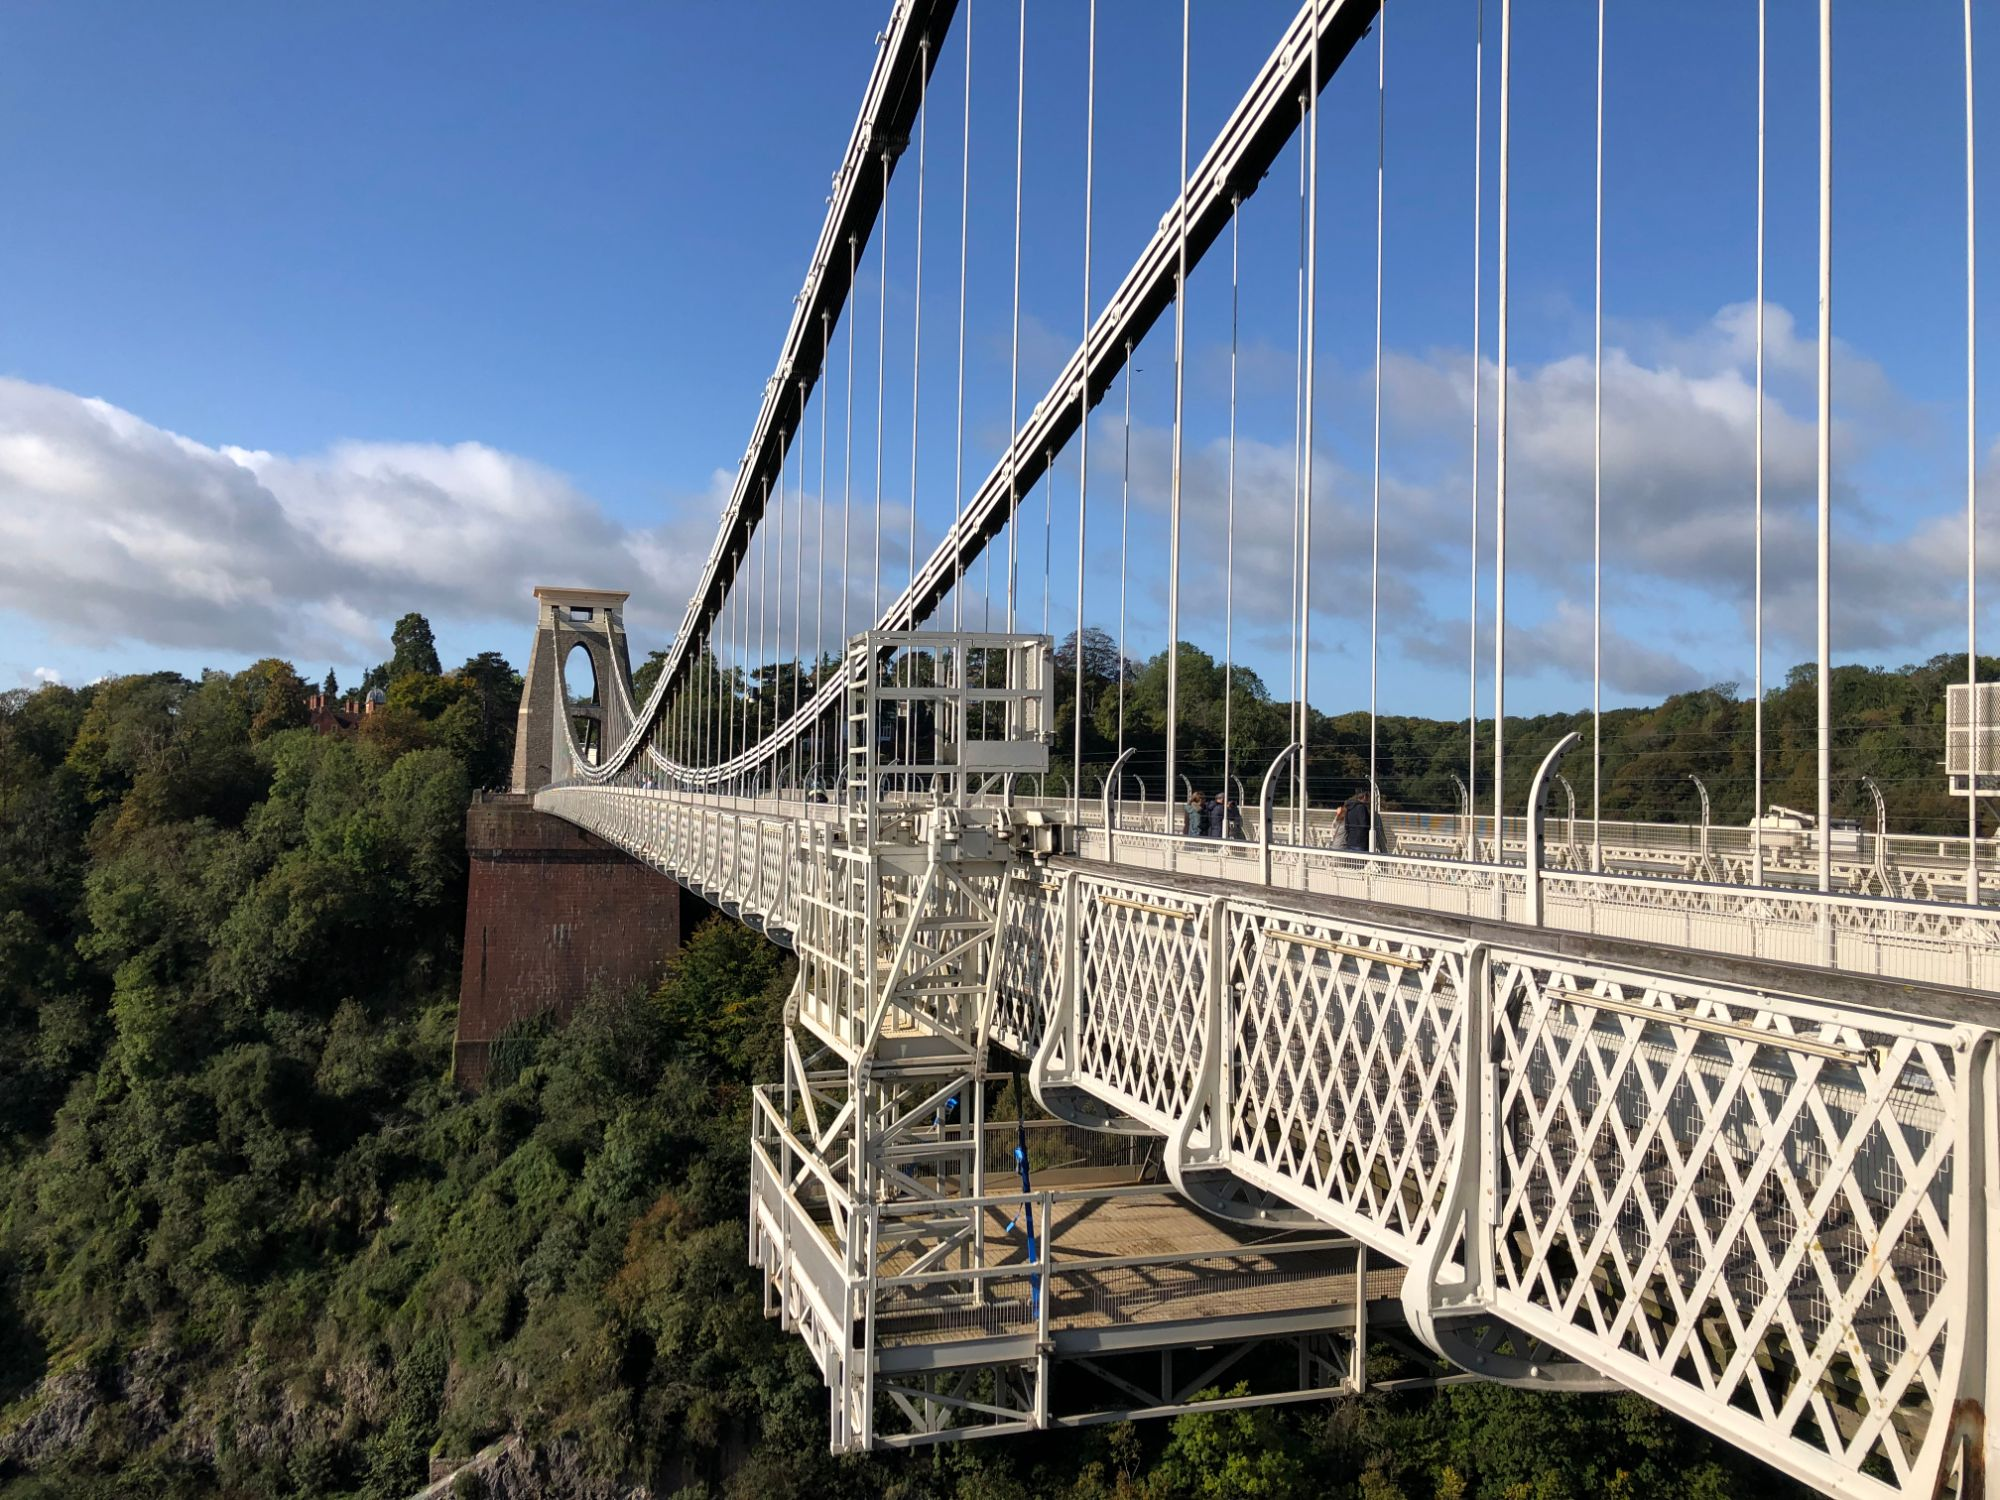 Free stock photo Bristol Suspension Bridge